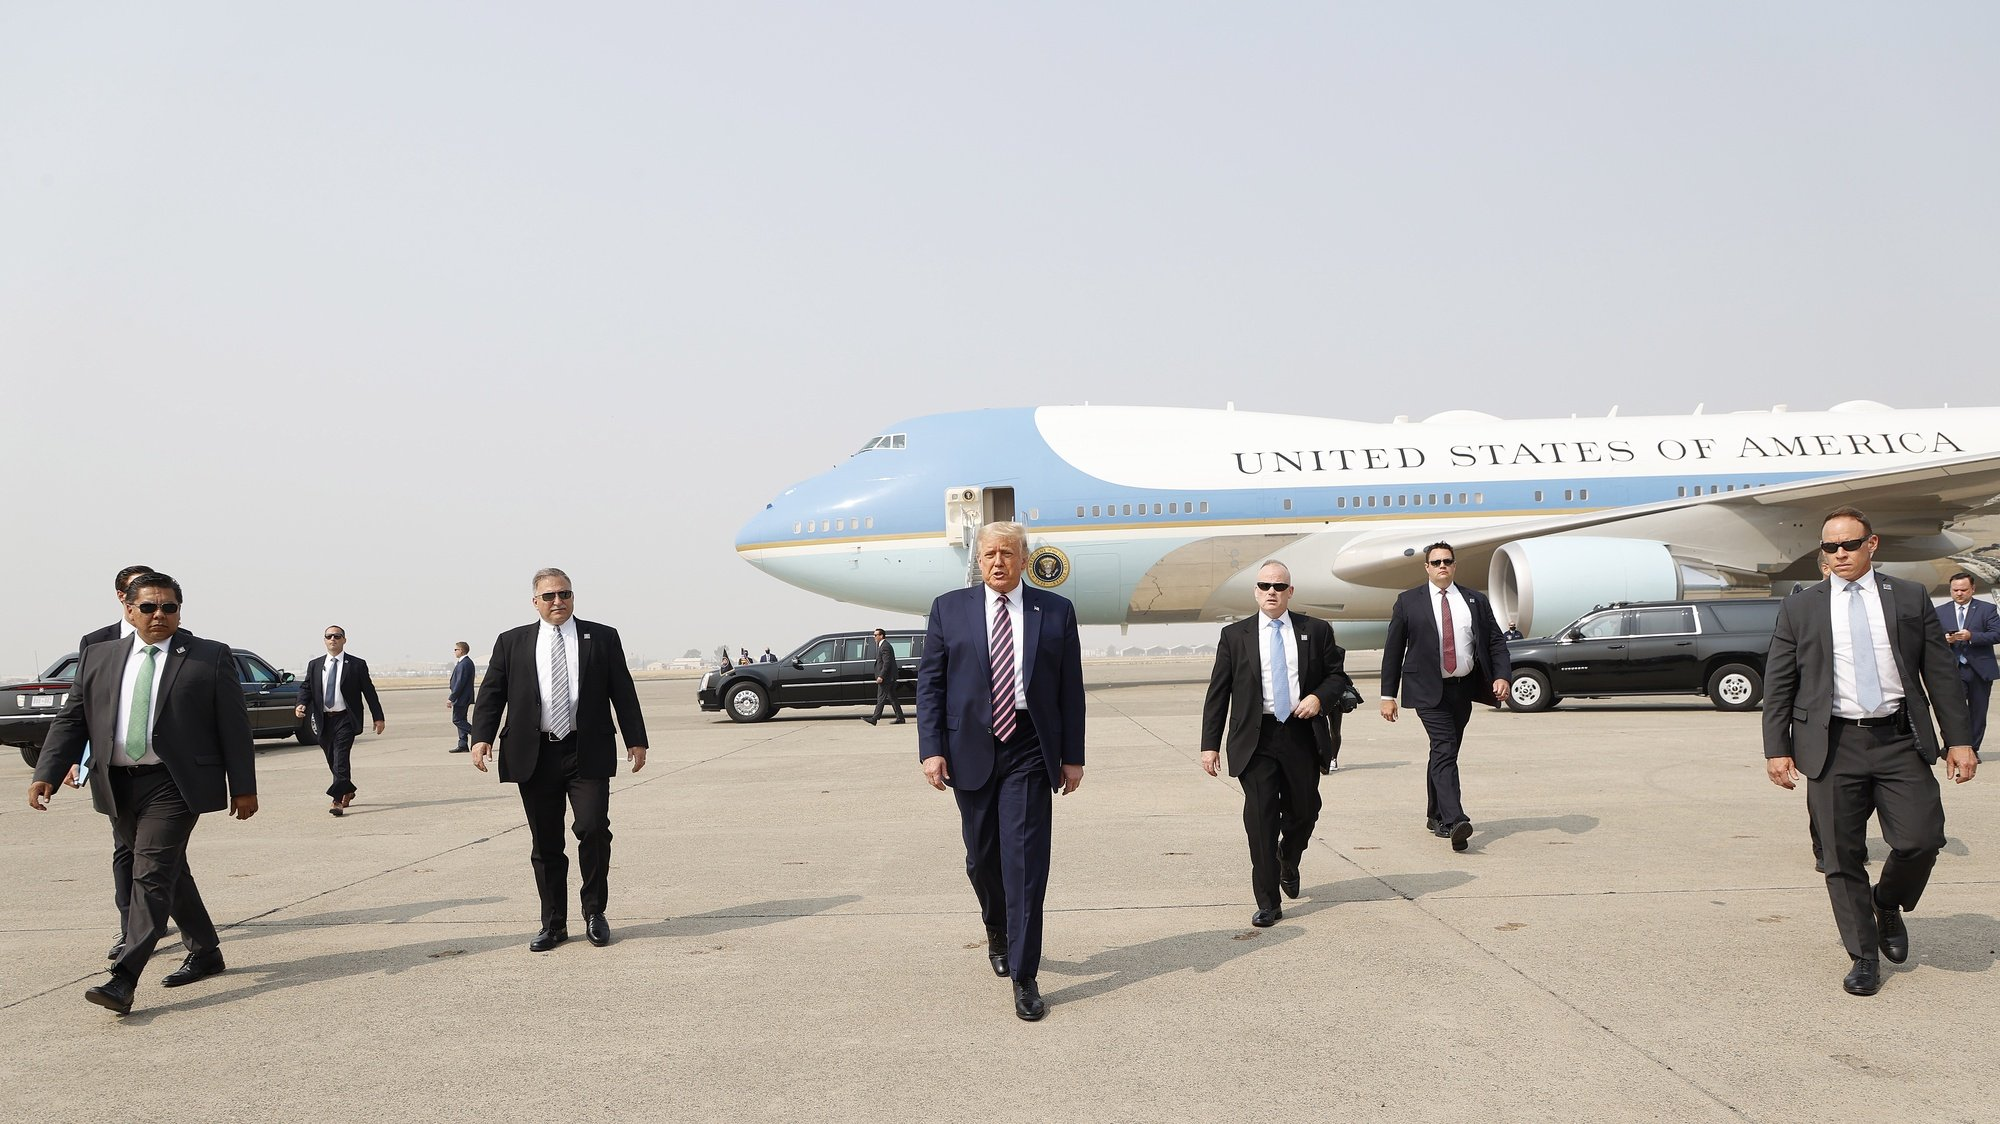 epa08939649 (FILE) US President Donald J. Trump (C) walks towards the media platform surrounded by his secret service detail after arriving on Air Force One at Sacramento McClellan Airport in McClelland Park, California, USA, 14 September 2020. The President visited Sacramento County to be briefed on the deadly wildfires that have burned more than three million acres across California. The presidency of Donald Trump, which records two presidential impeachments, will end at noon on 20 January 2021.  EPA/JOHN G. MABANGLO *** Local Caption *** 56342653